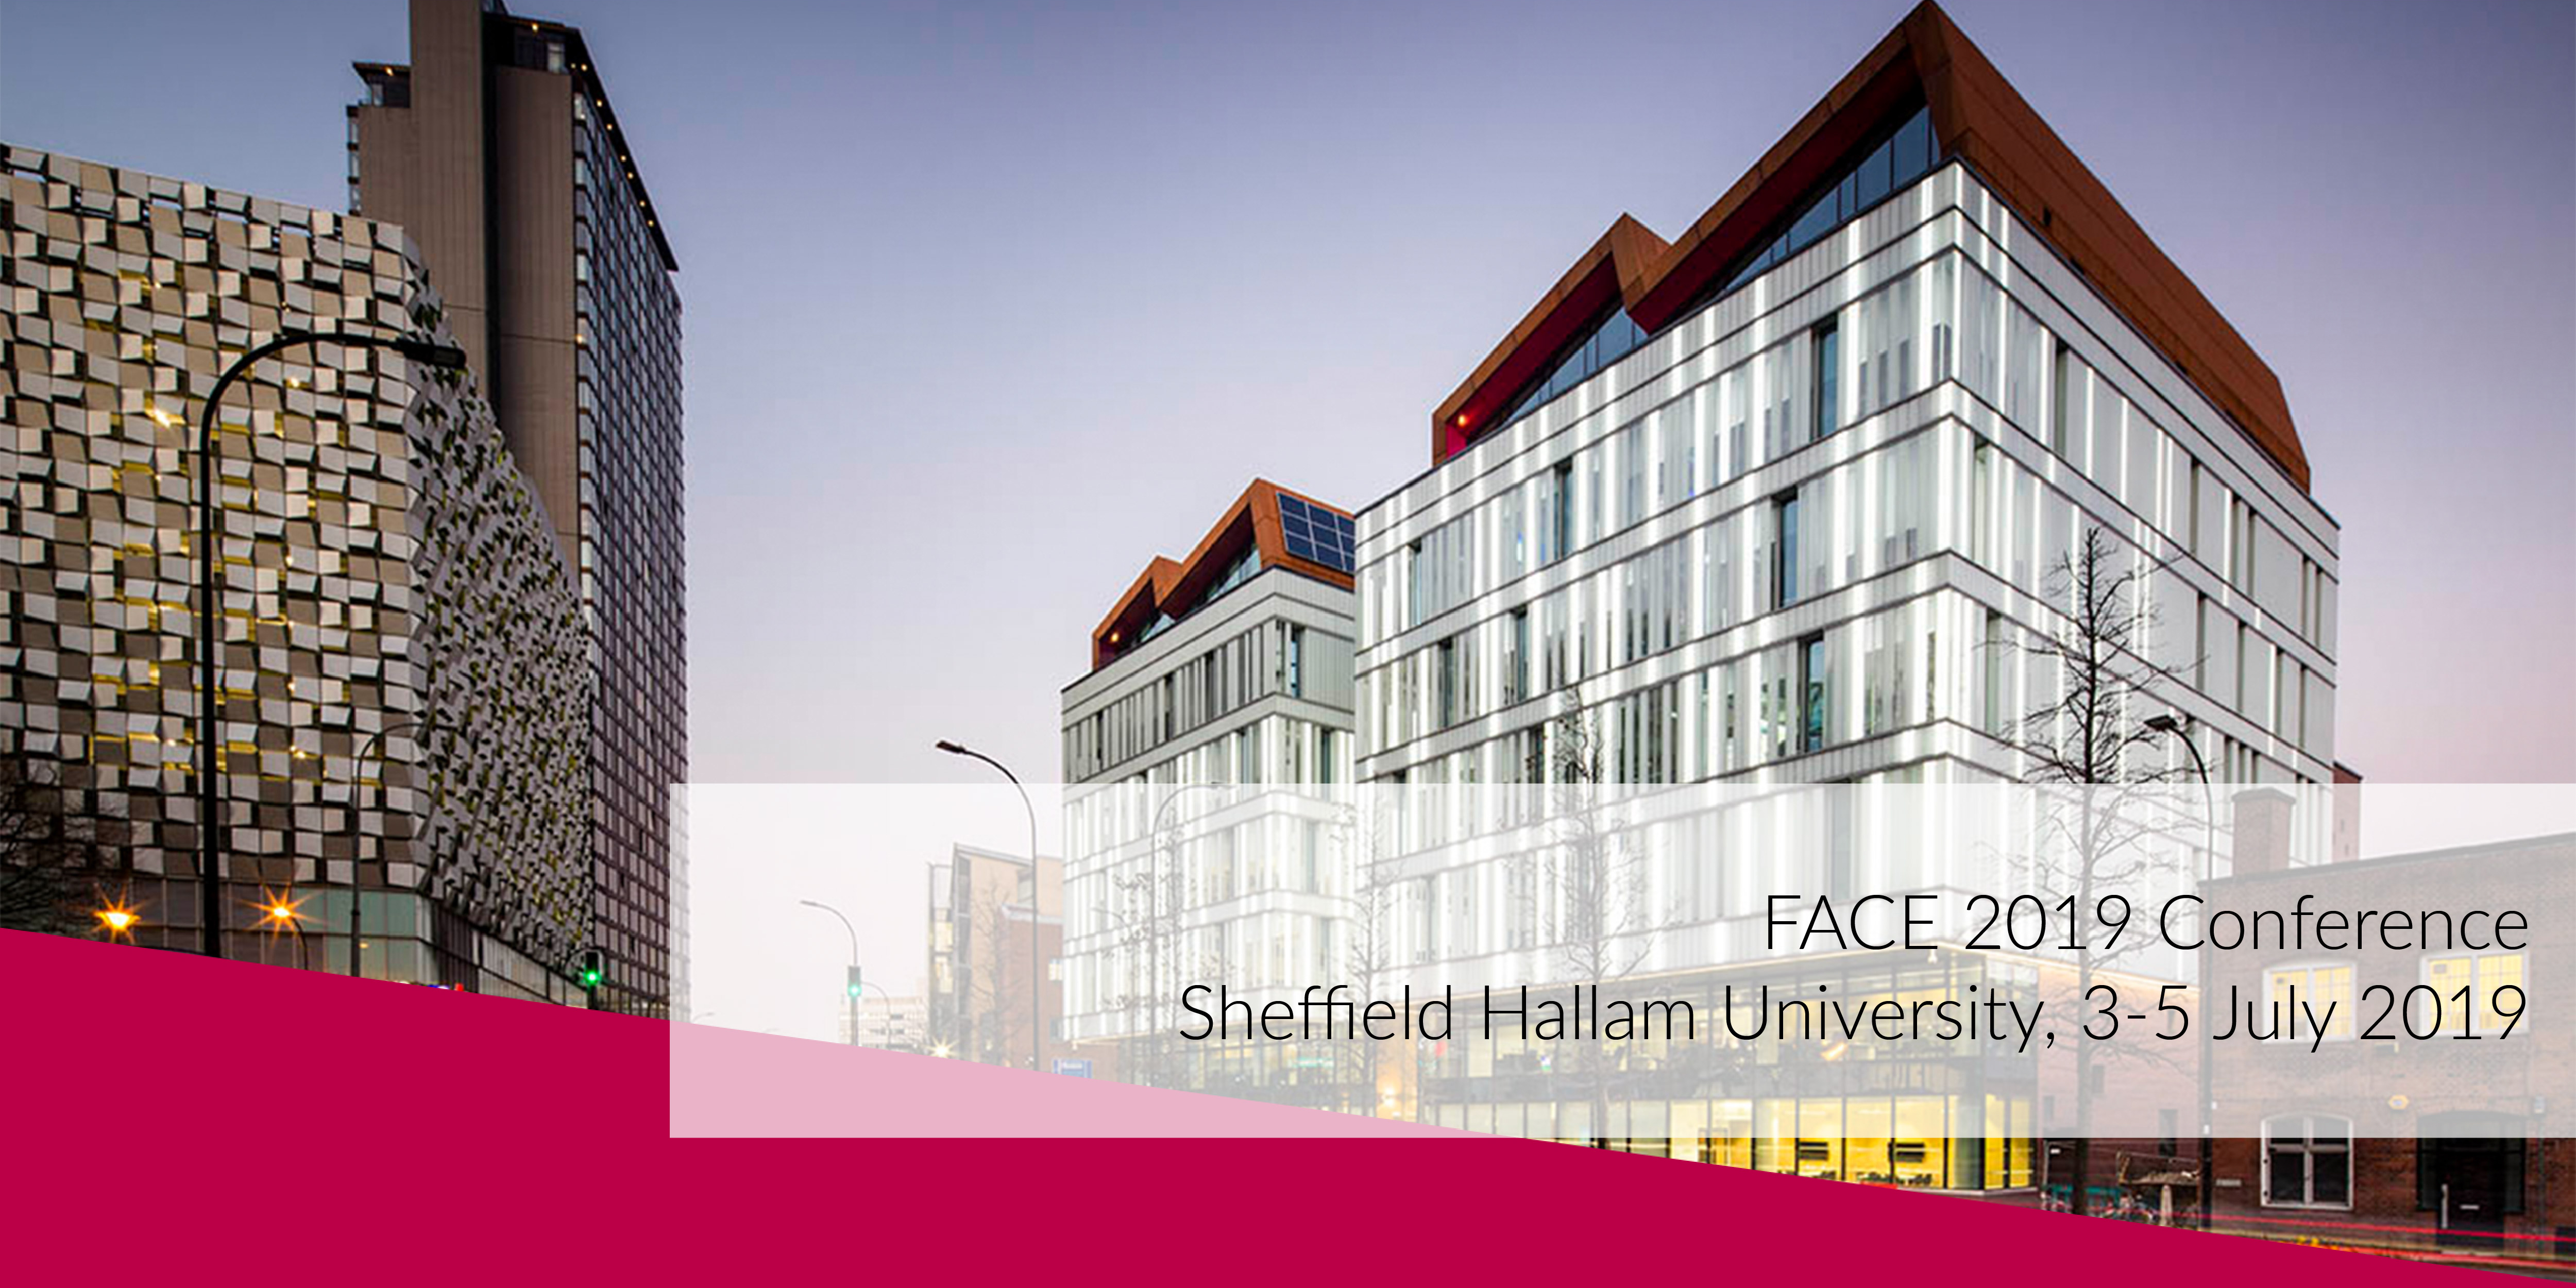 FACE 2019 Conference